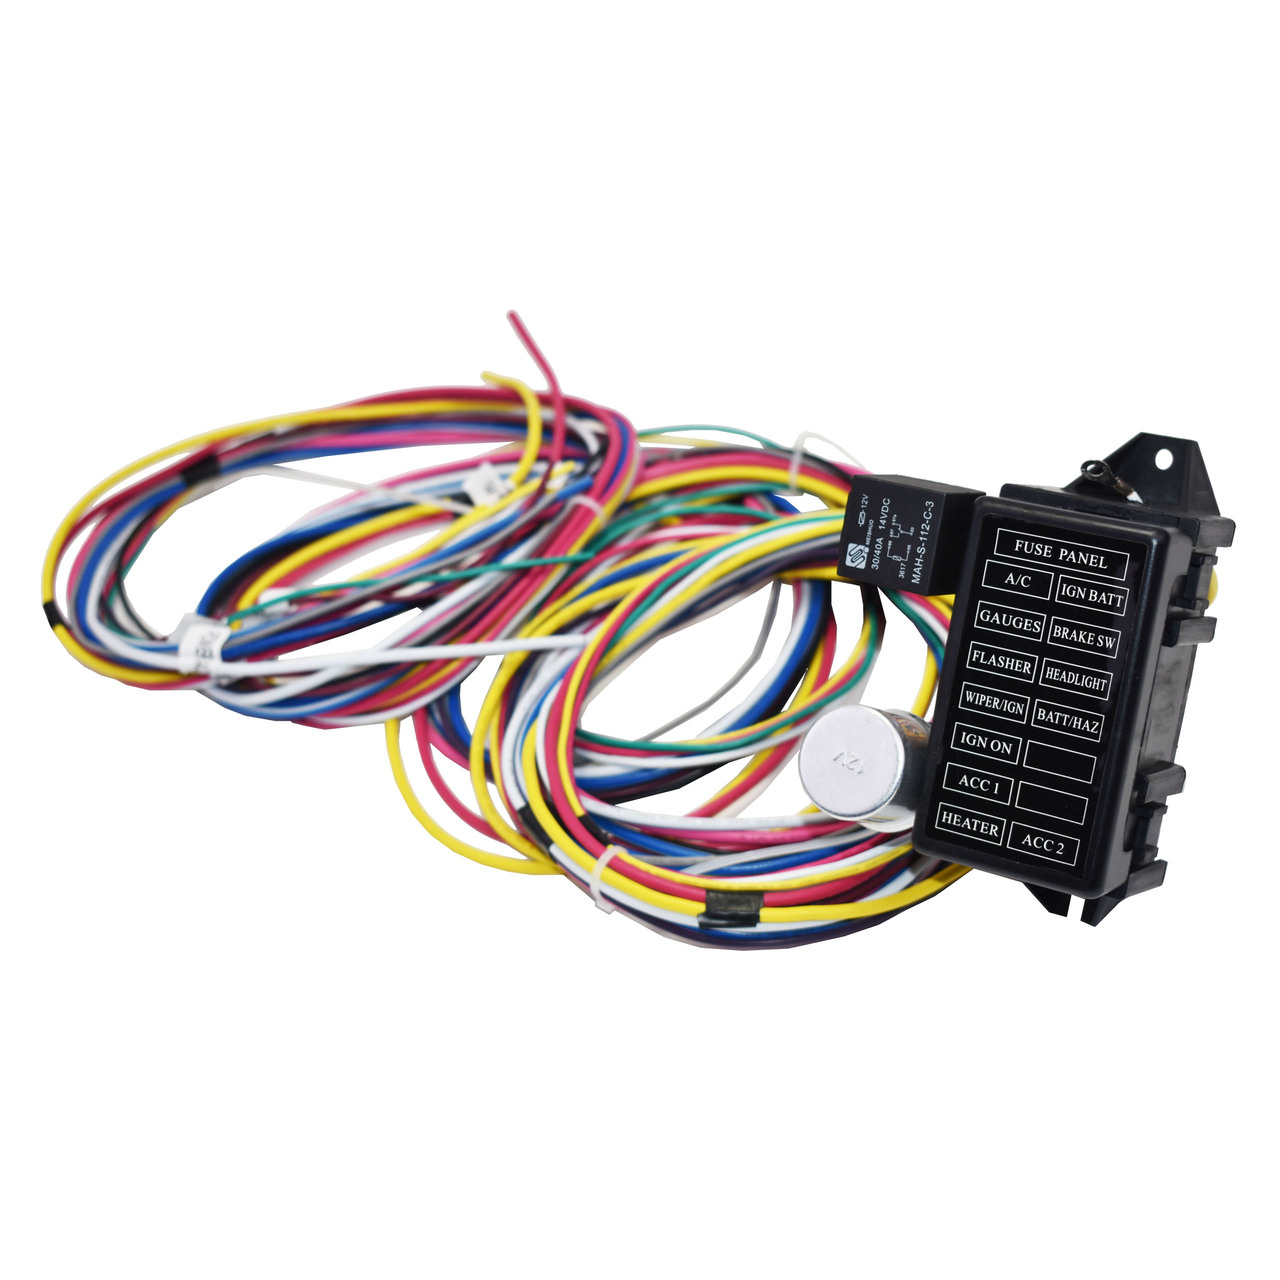 A-Team Performance 12 Circuit Universal Wire Harness Muscle Car Hot Rod Street Rod Long Wires